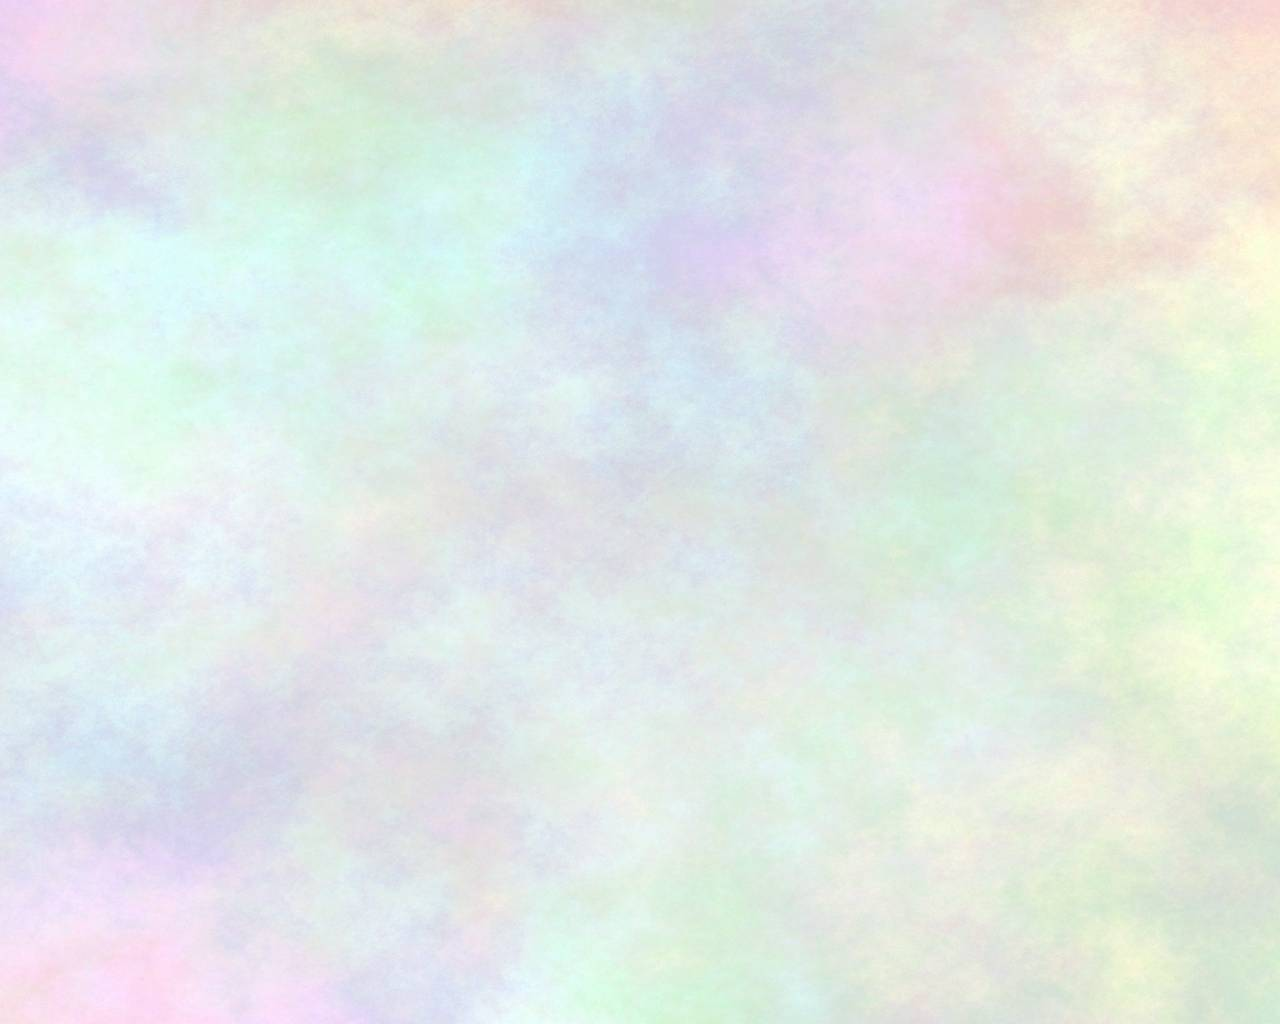 pastel desktop wallpaper - photo #4